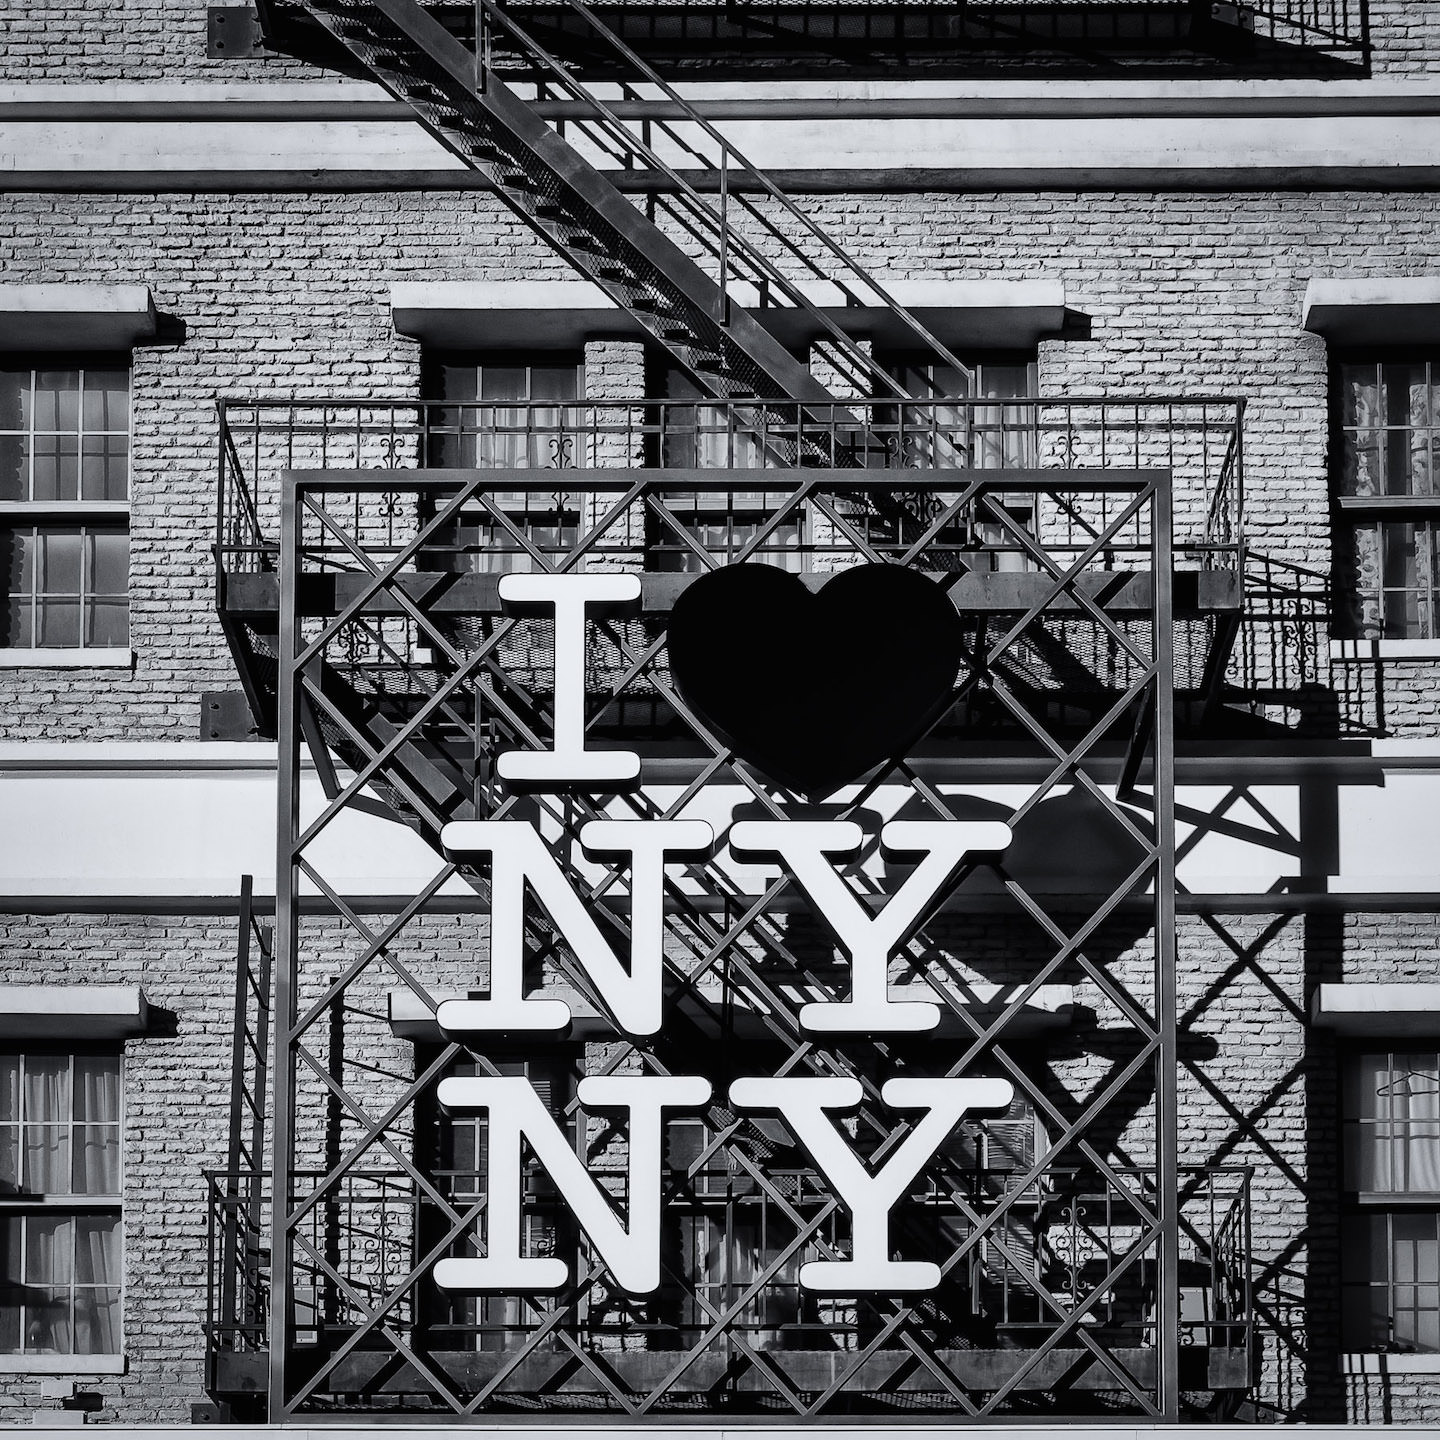 A variation on New York City's iconic slogan, emblazoned on a fake, scene-setting fire escape at Las Vegas' New York New York Hotel & Casino.